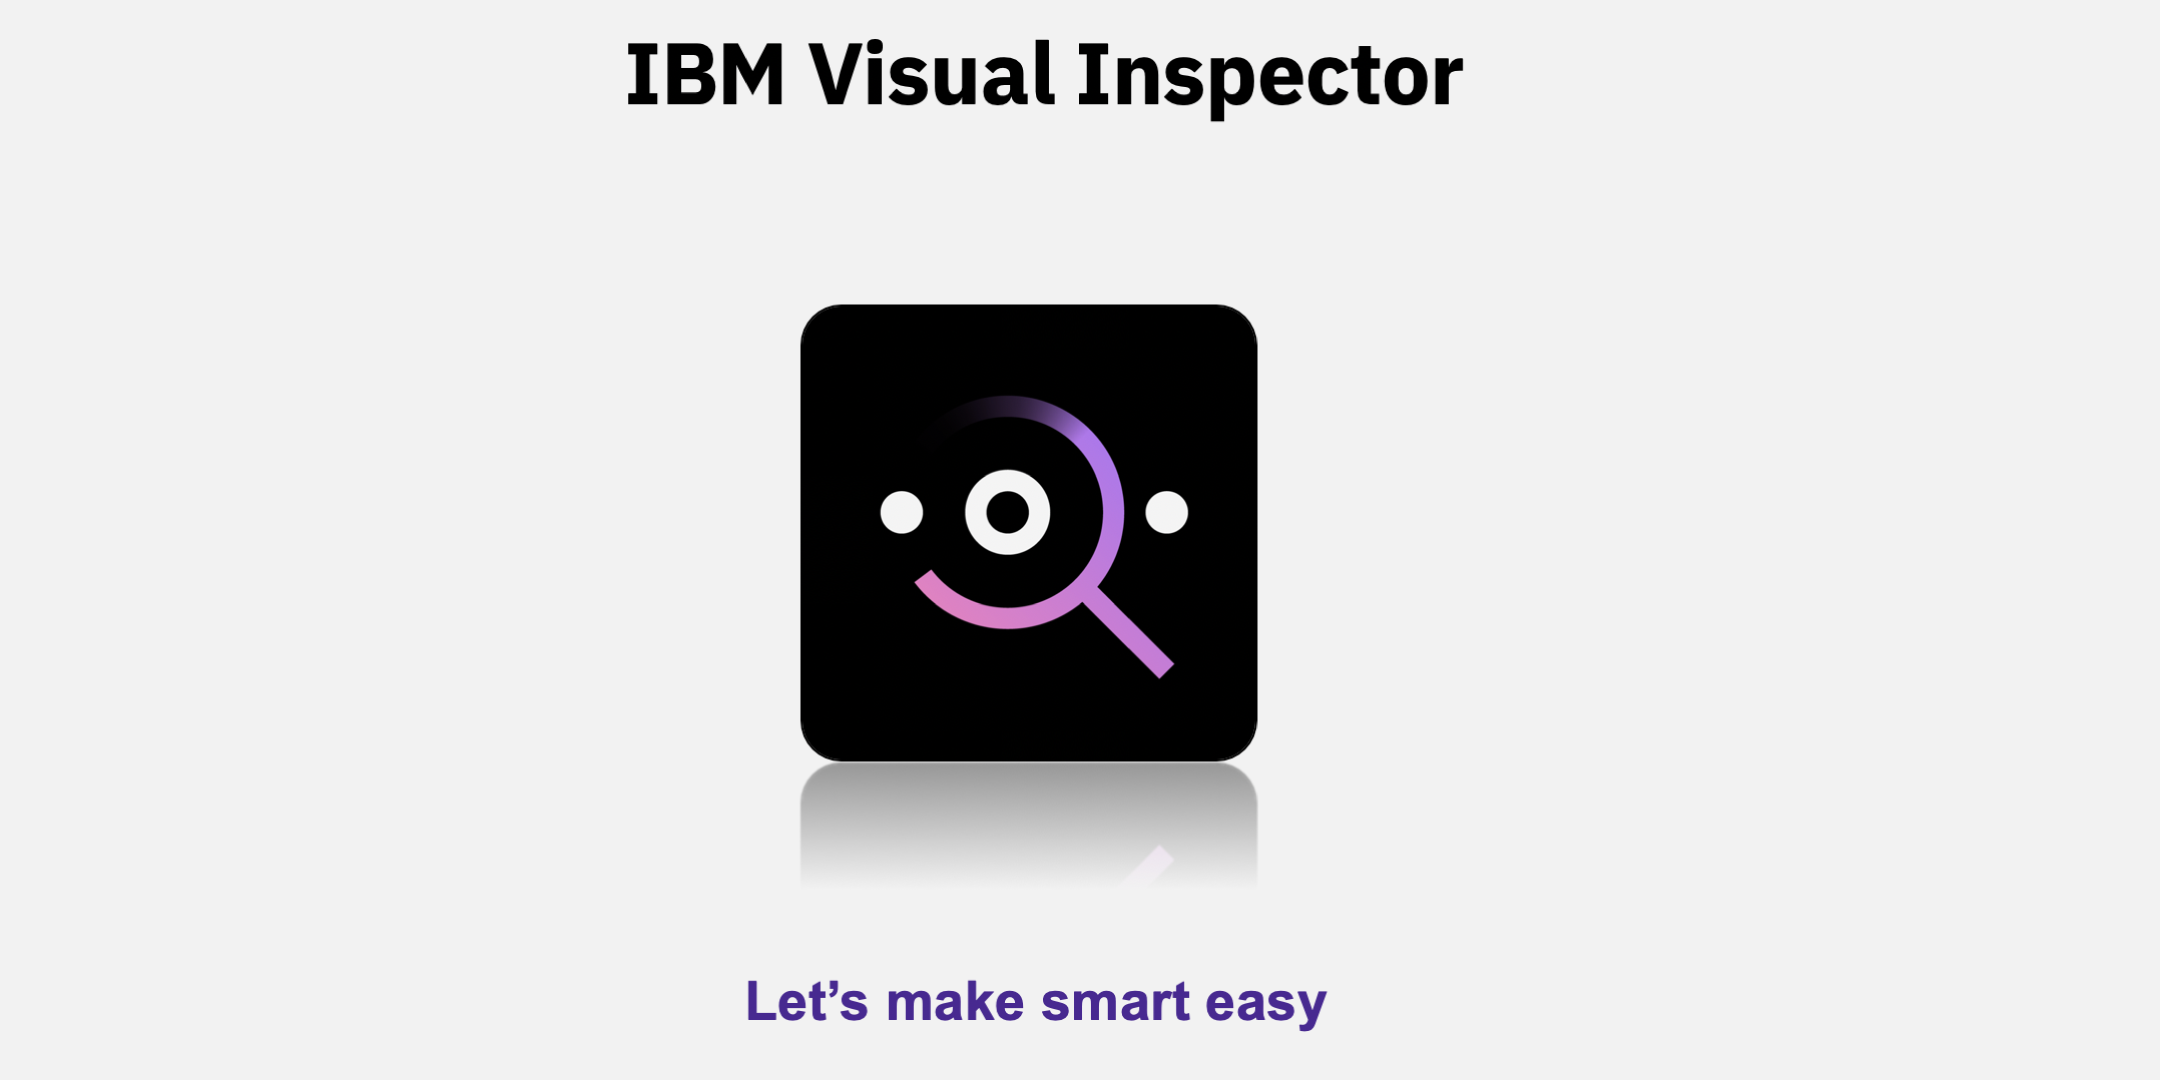 Visual Inspector iOS Application Demo with IBM